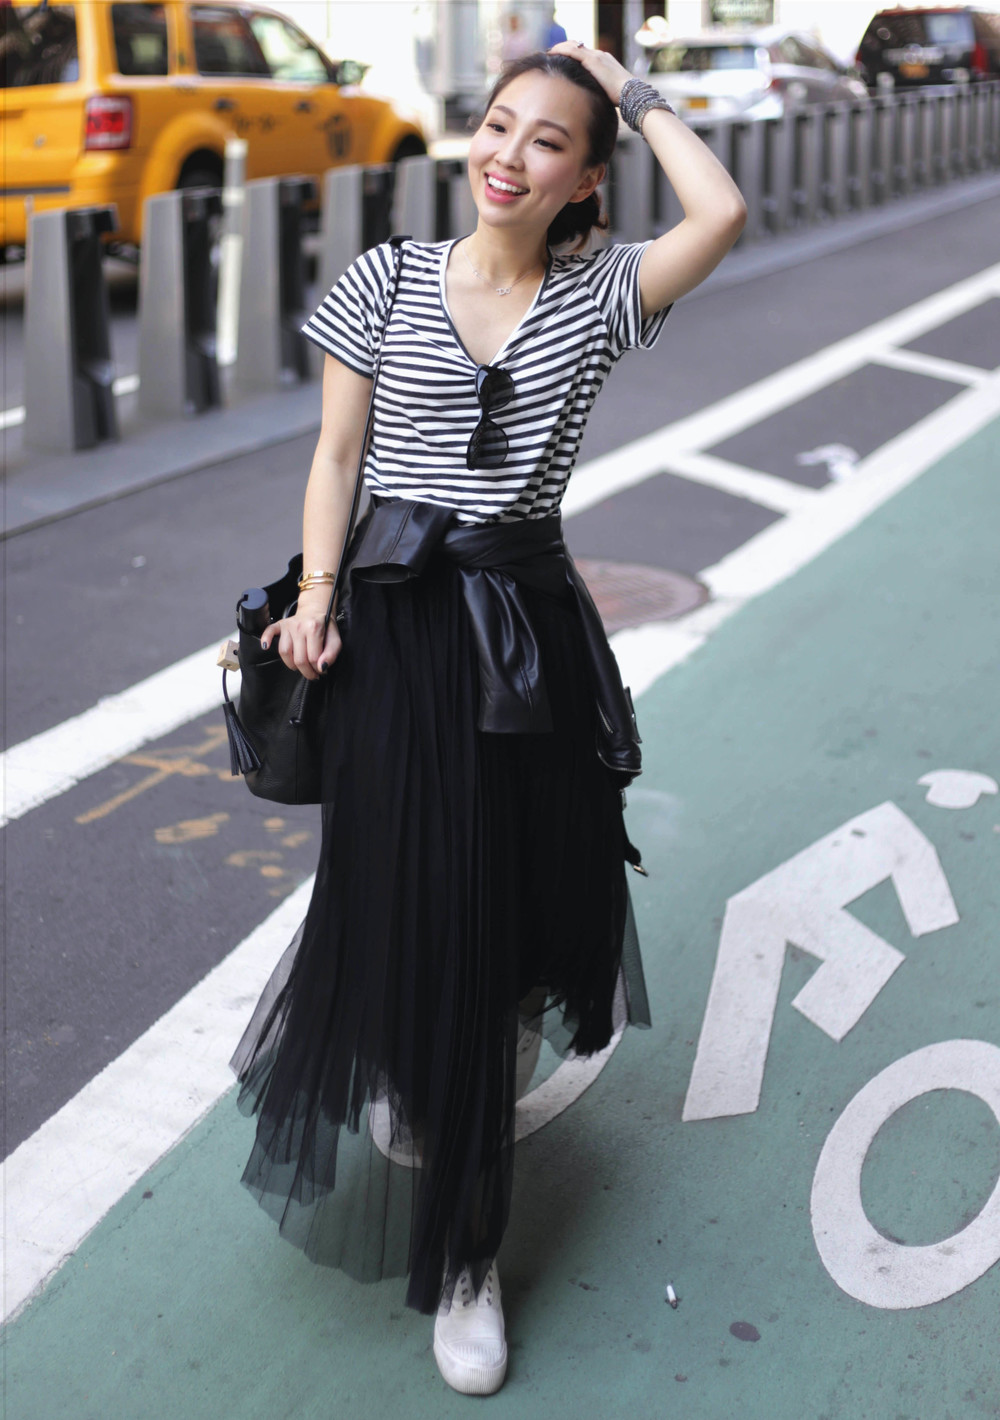 black and white stripe t shirt outfit.jpg